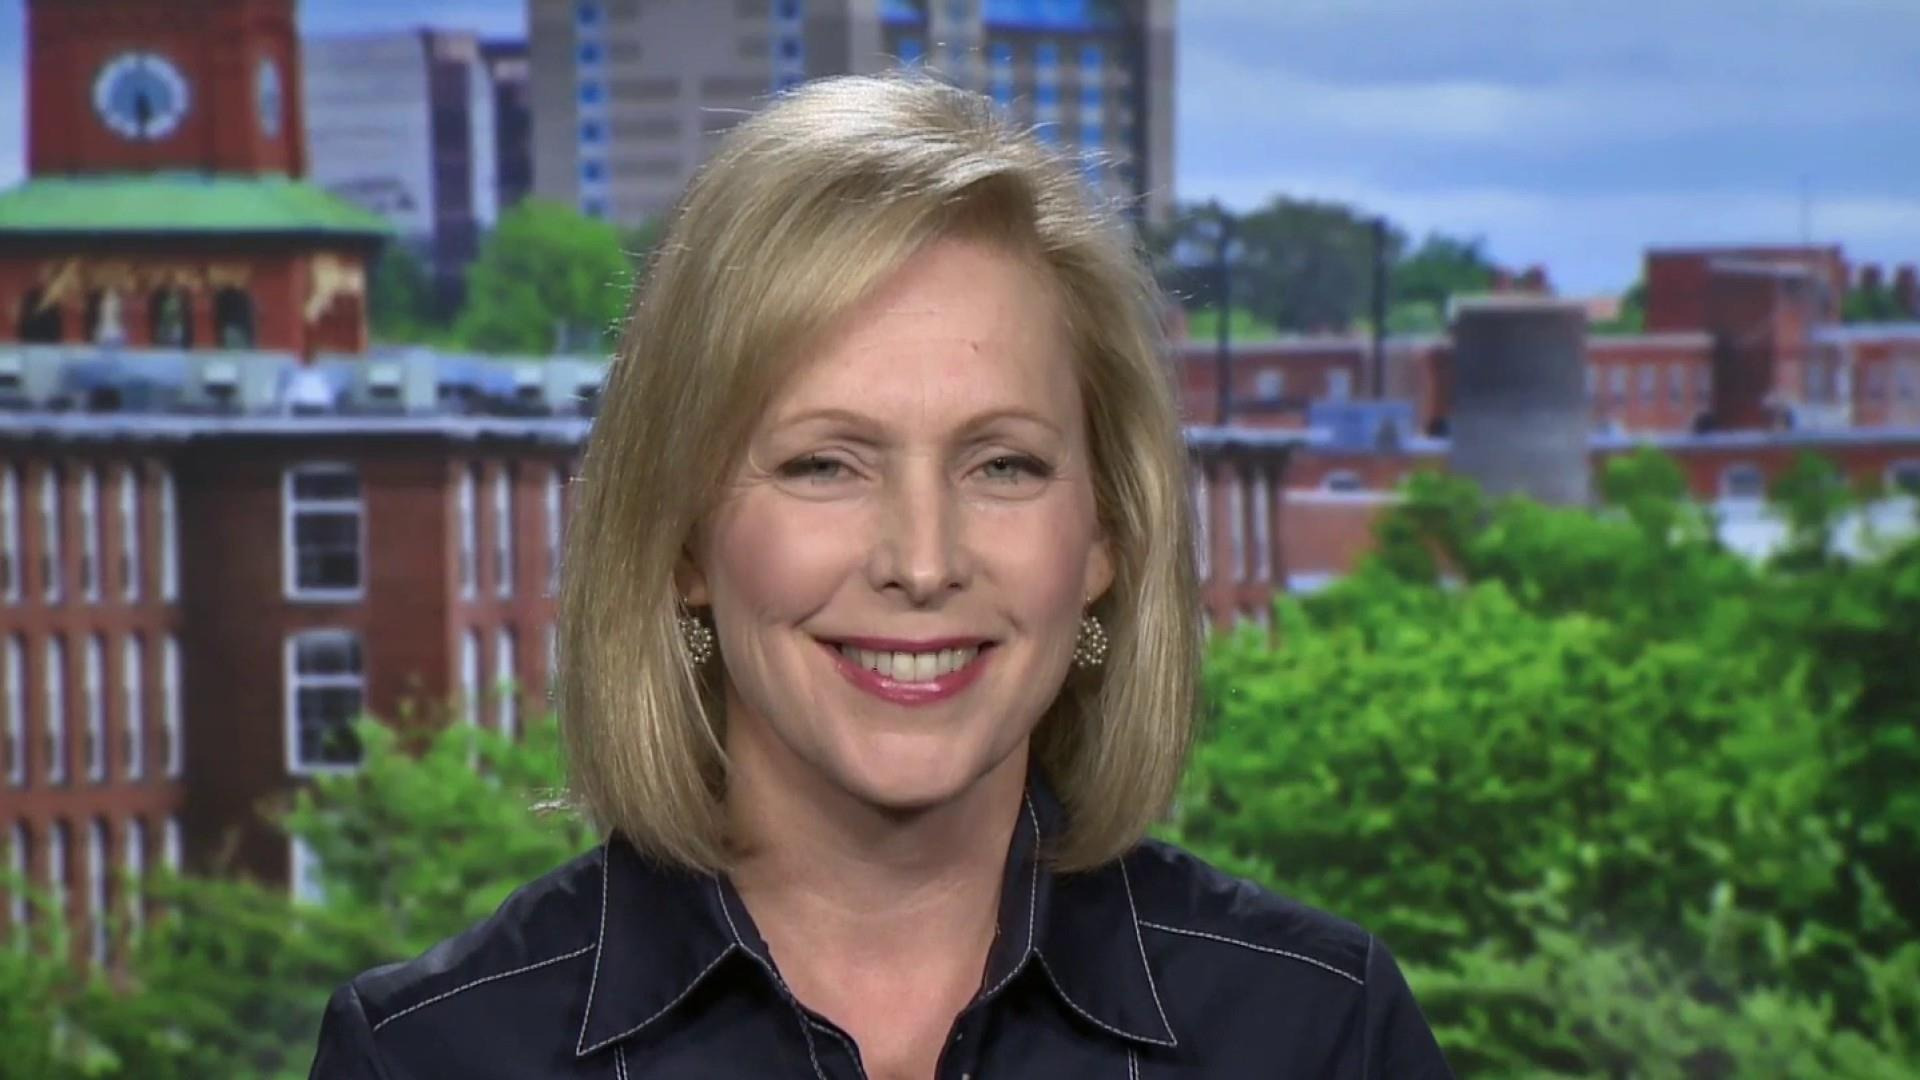 Gillibrand on Biden: I don't think it should be so hard to apologize